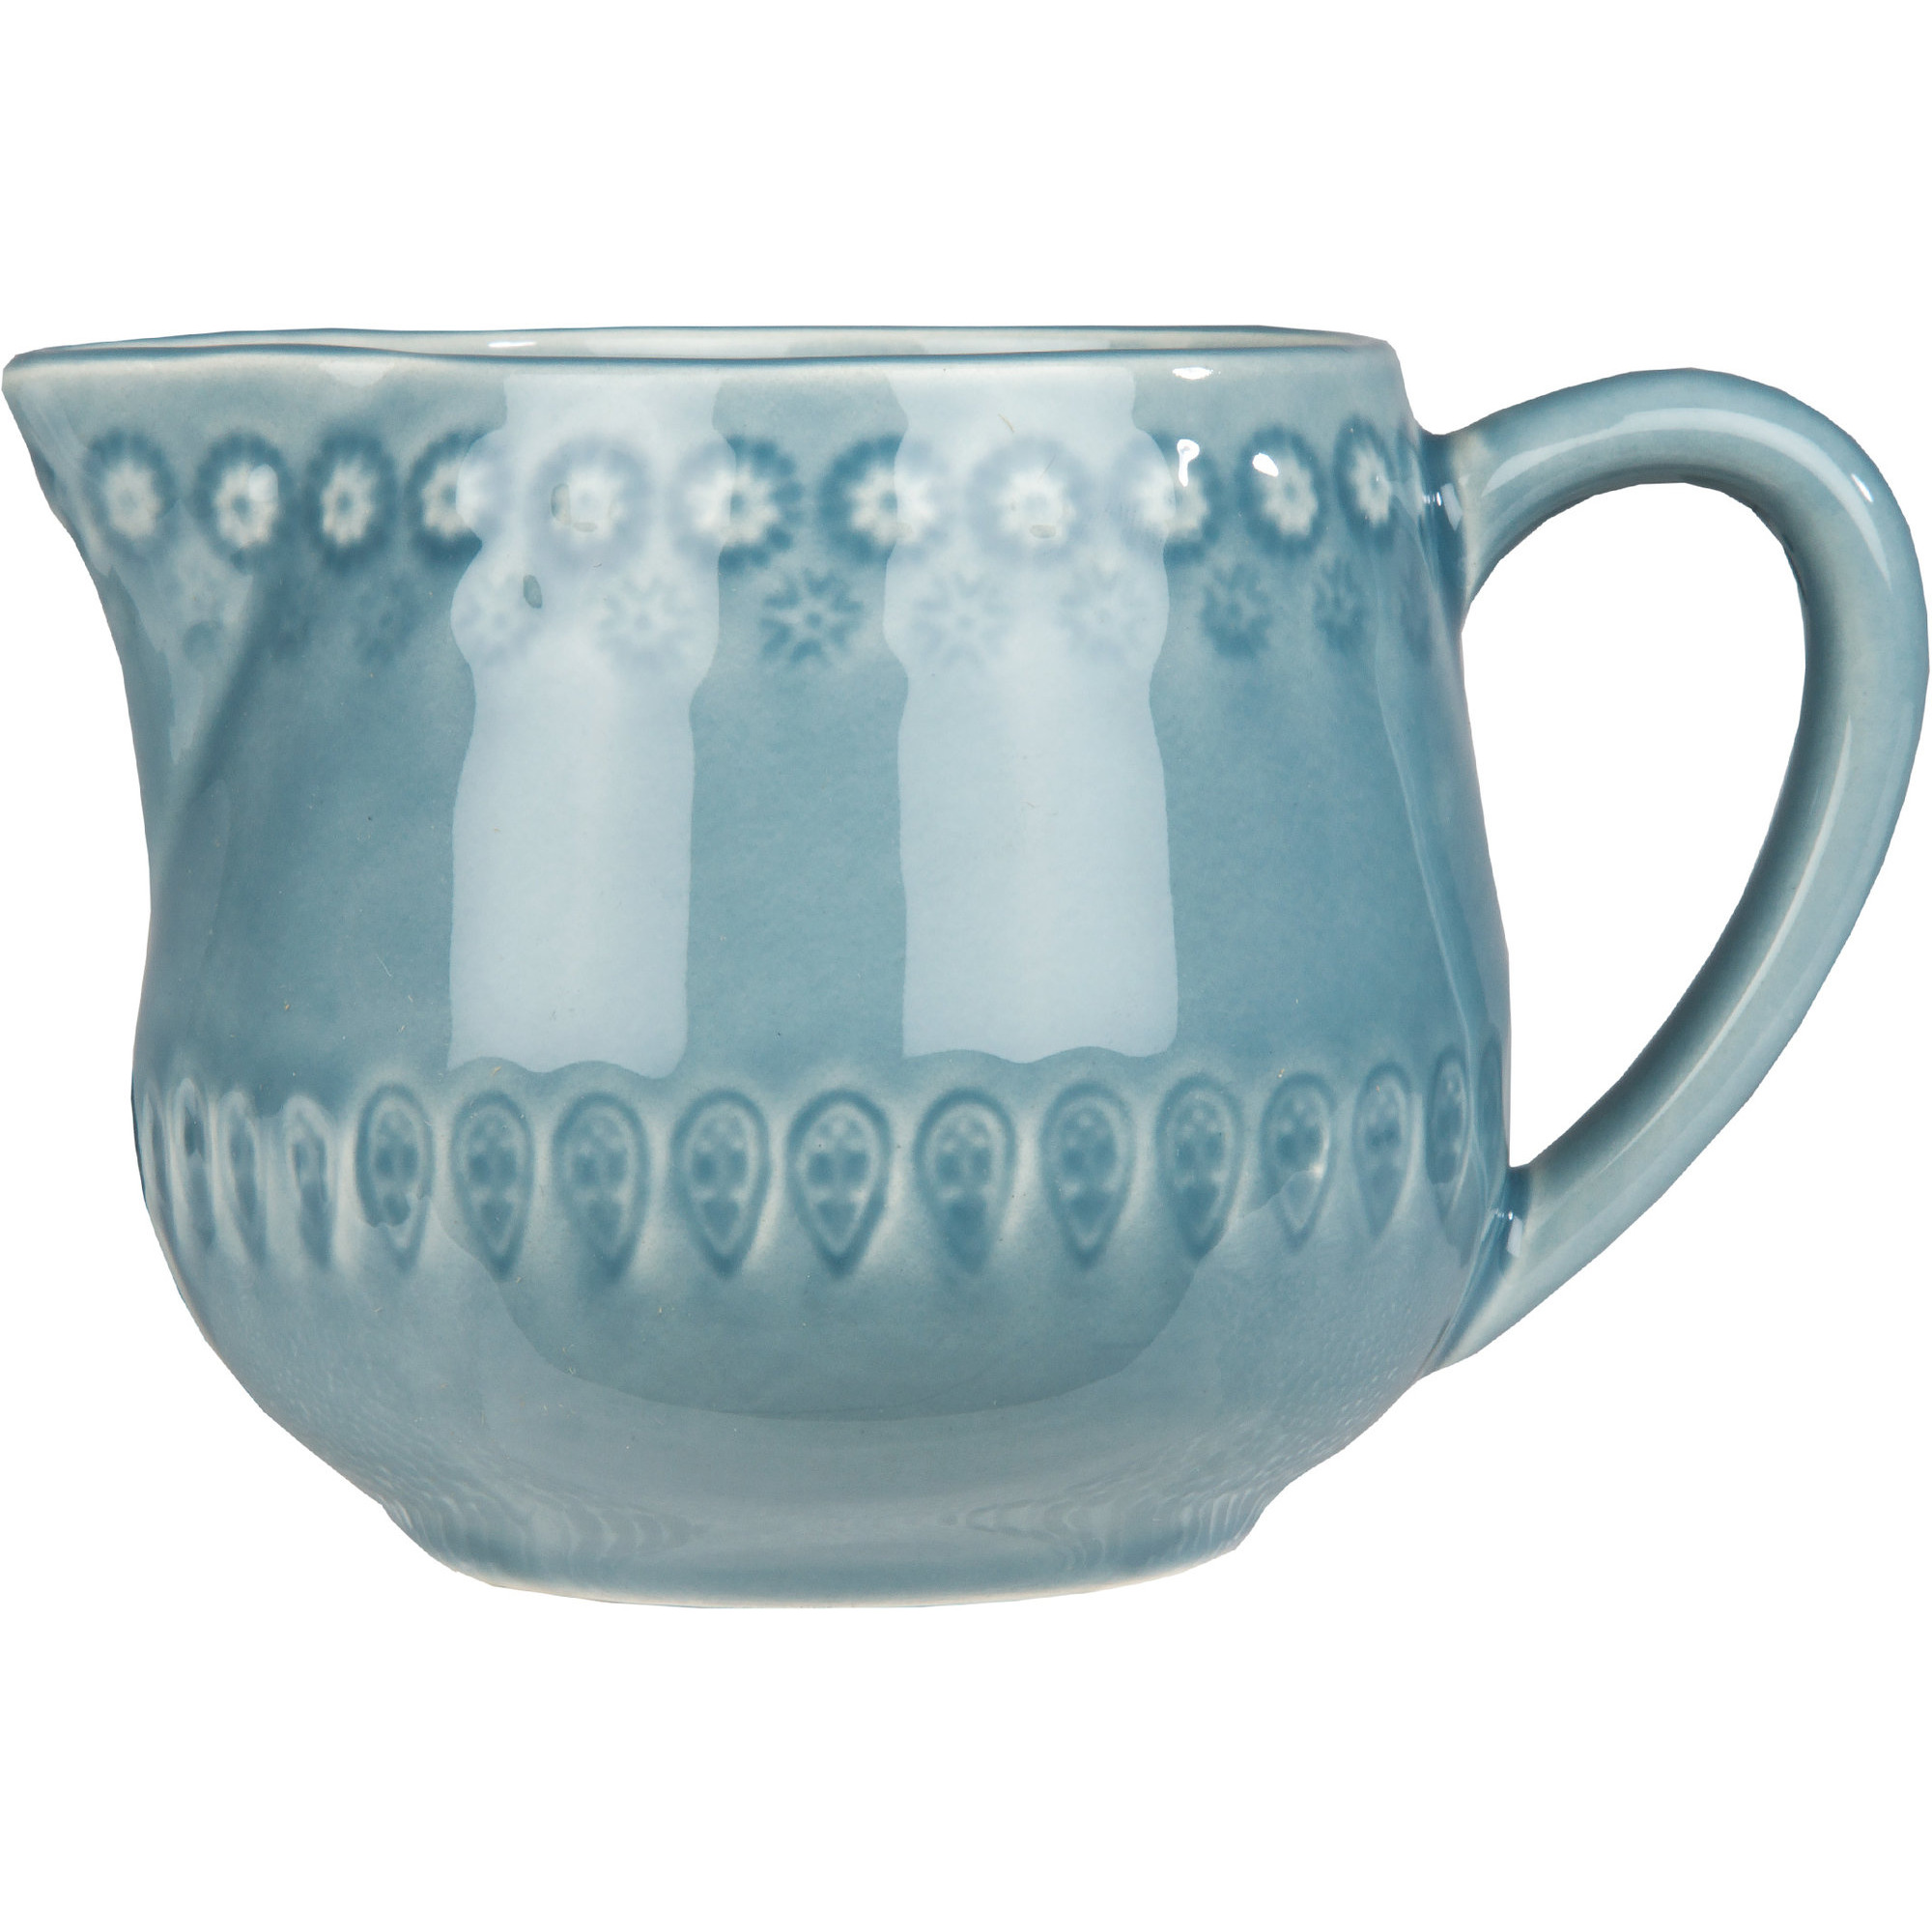 PotteryJo Daisy Mjölkkanna 30 cl Dusty Blue